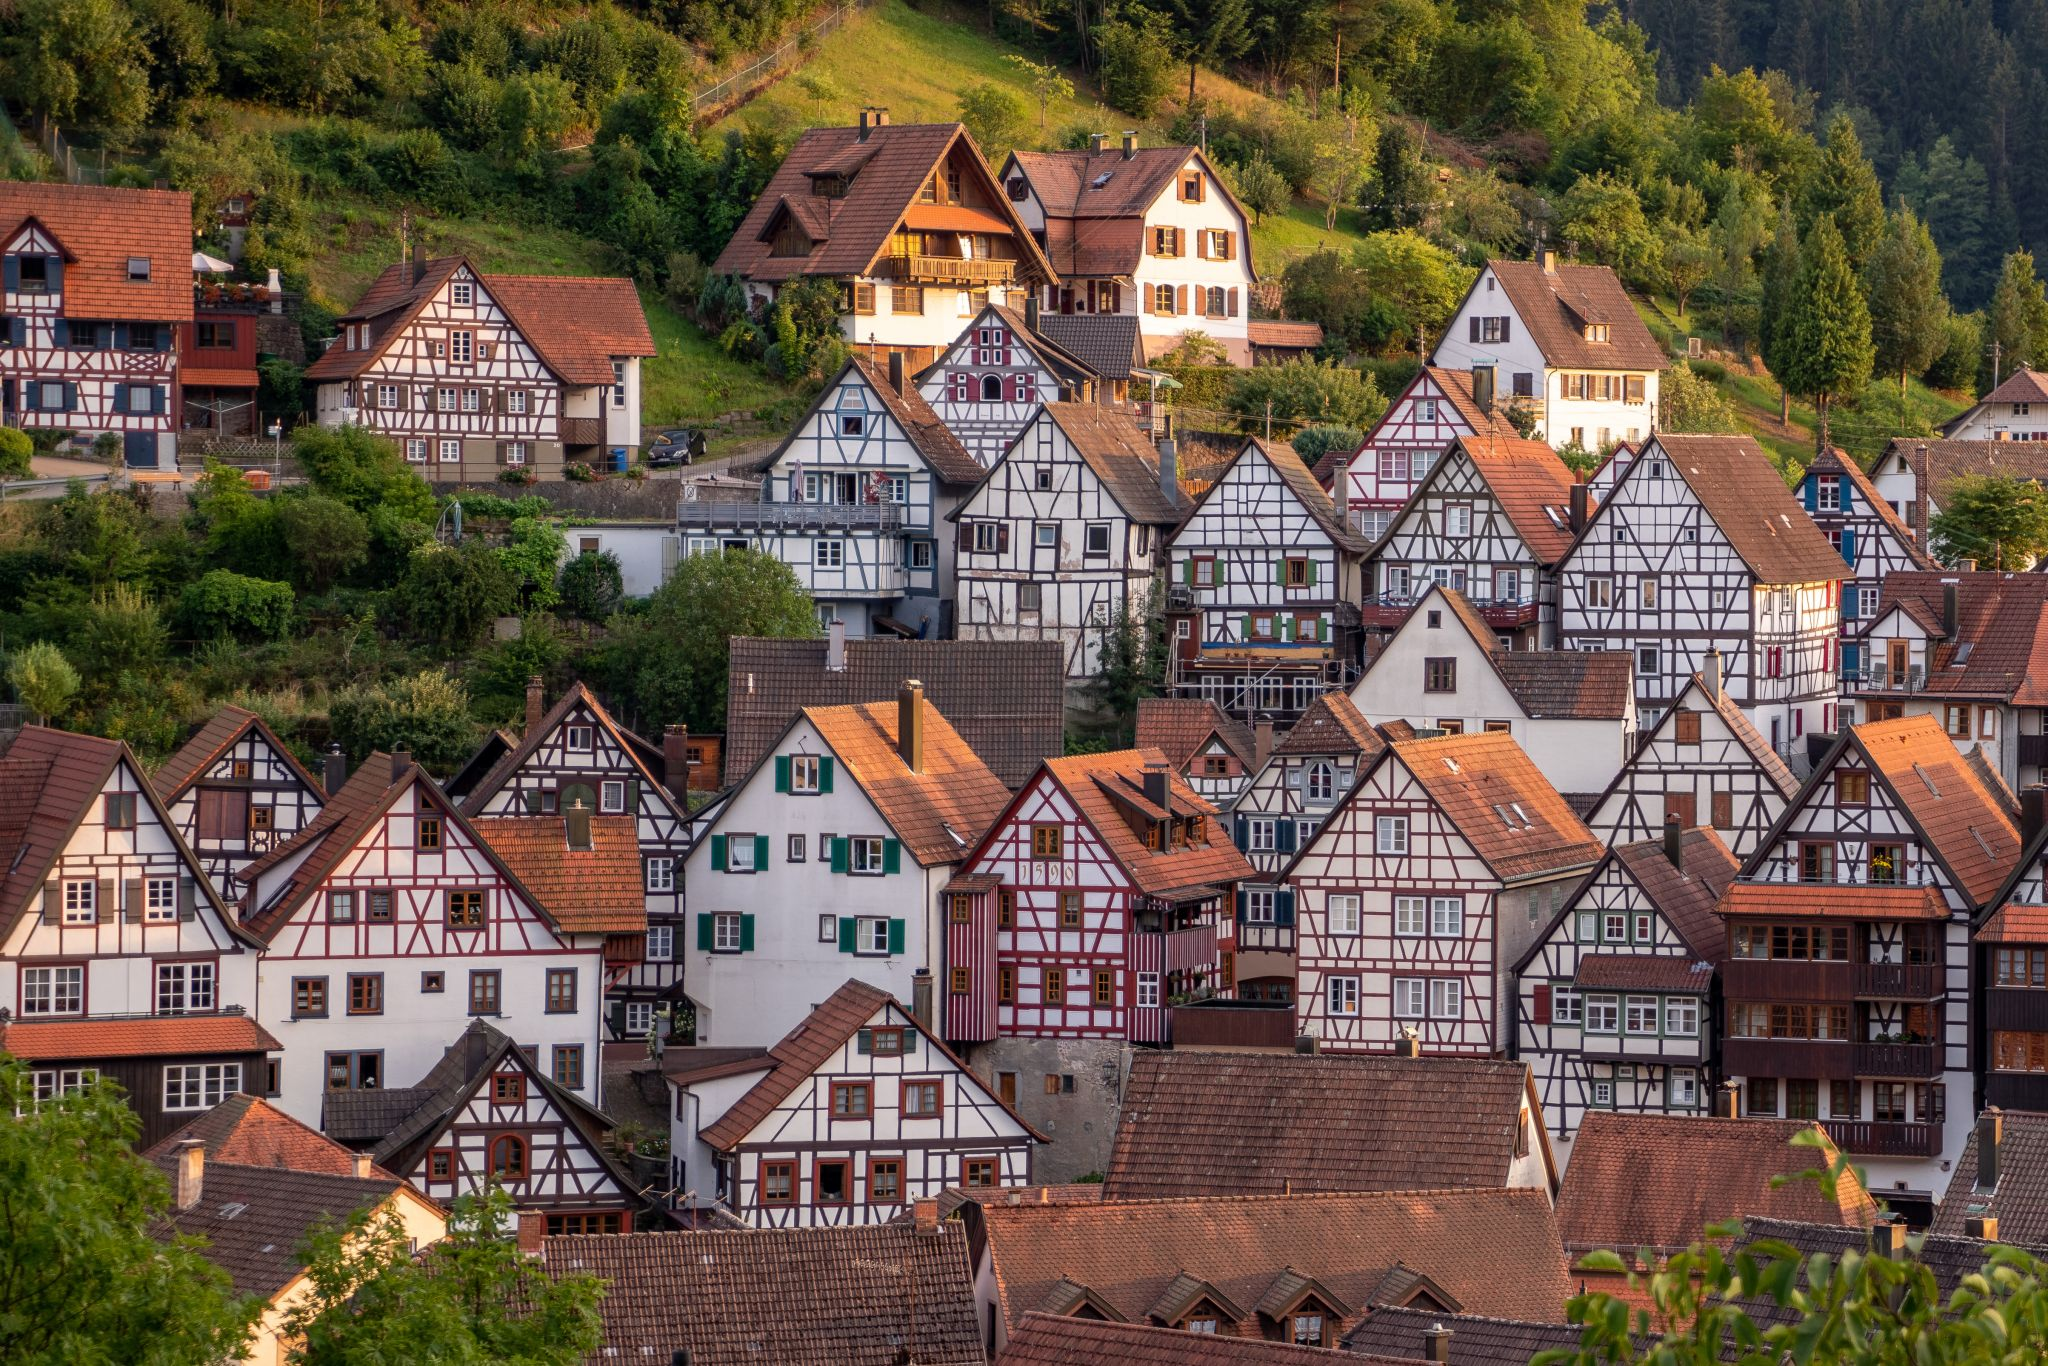 Half Timbered Houses in Schiltach, Germany